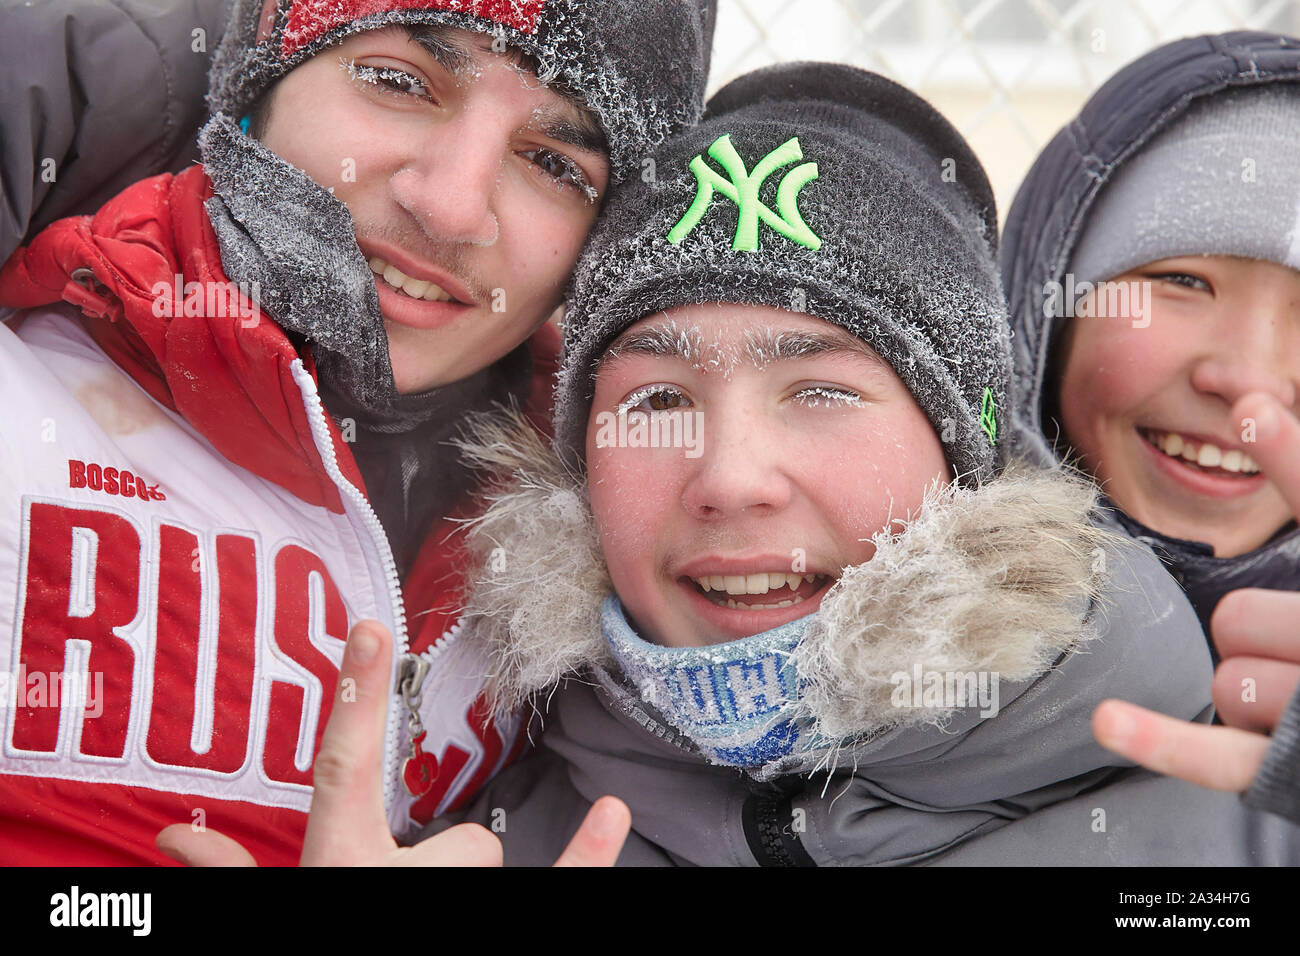 Russia Yakutsk Young people playing footbal -42 degrees Celcius 2-02-2013 photo: Jaco Klamer Stock Photo